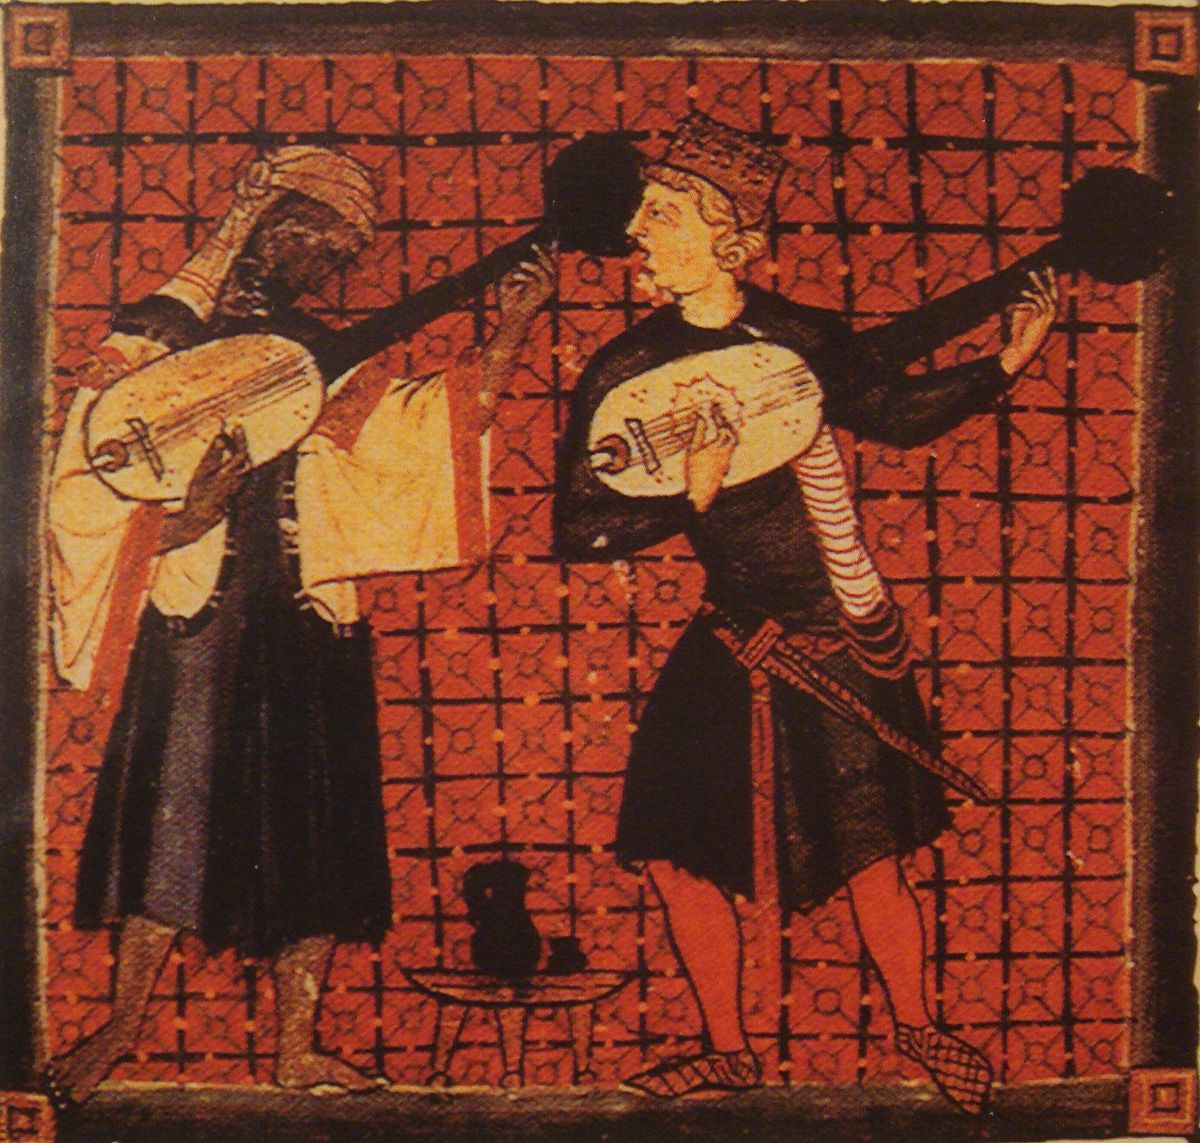 difference between medieval and renaissance music